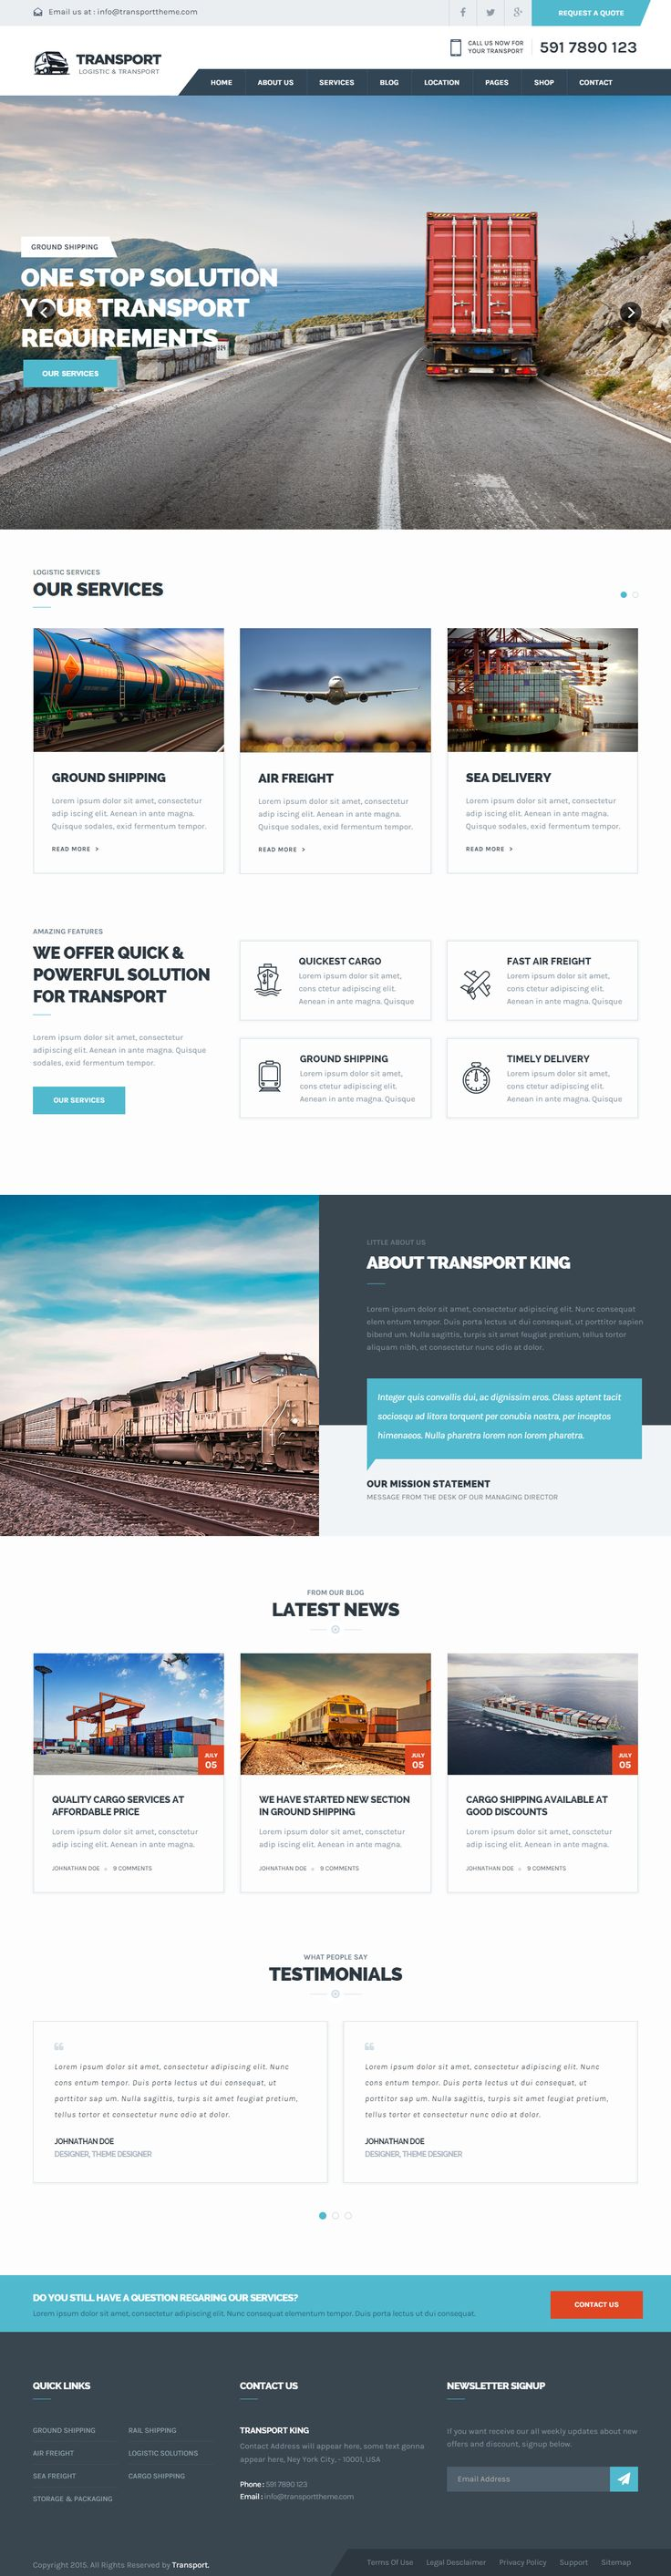 Transport is Premium full Responsive Retina #Logistic #HTML5 #Template. Bootstrap 3 Framework. Parallax Scrolling. Google Map. Test free demo at: http://www.responsivemiracle.com/cms/transport-premium-responsive-logistic-transportation-warehouse-html5-template/